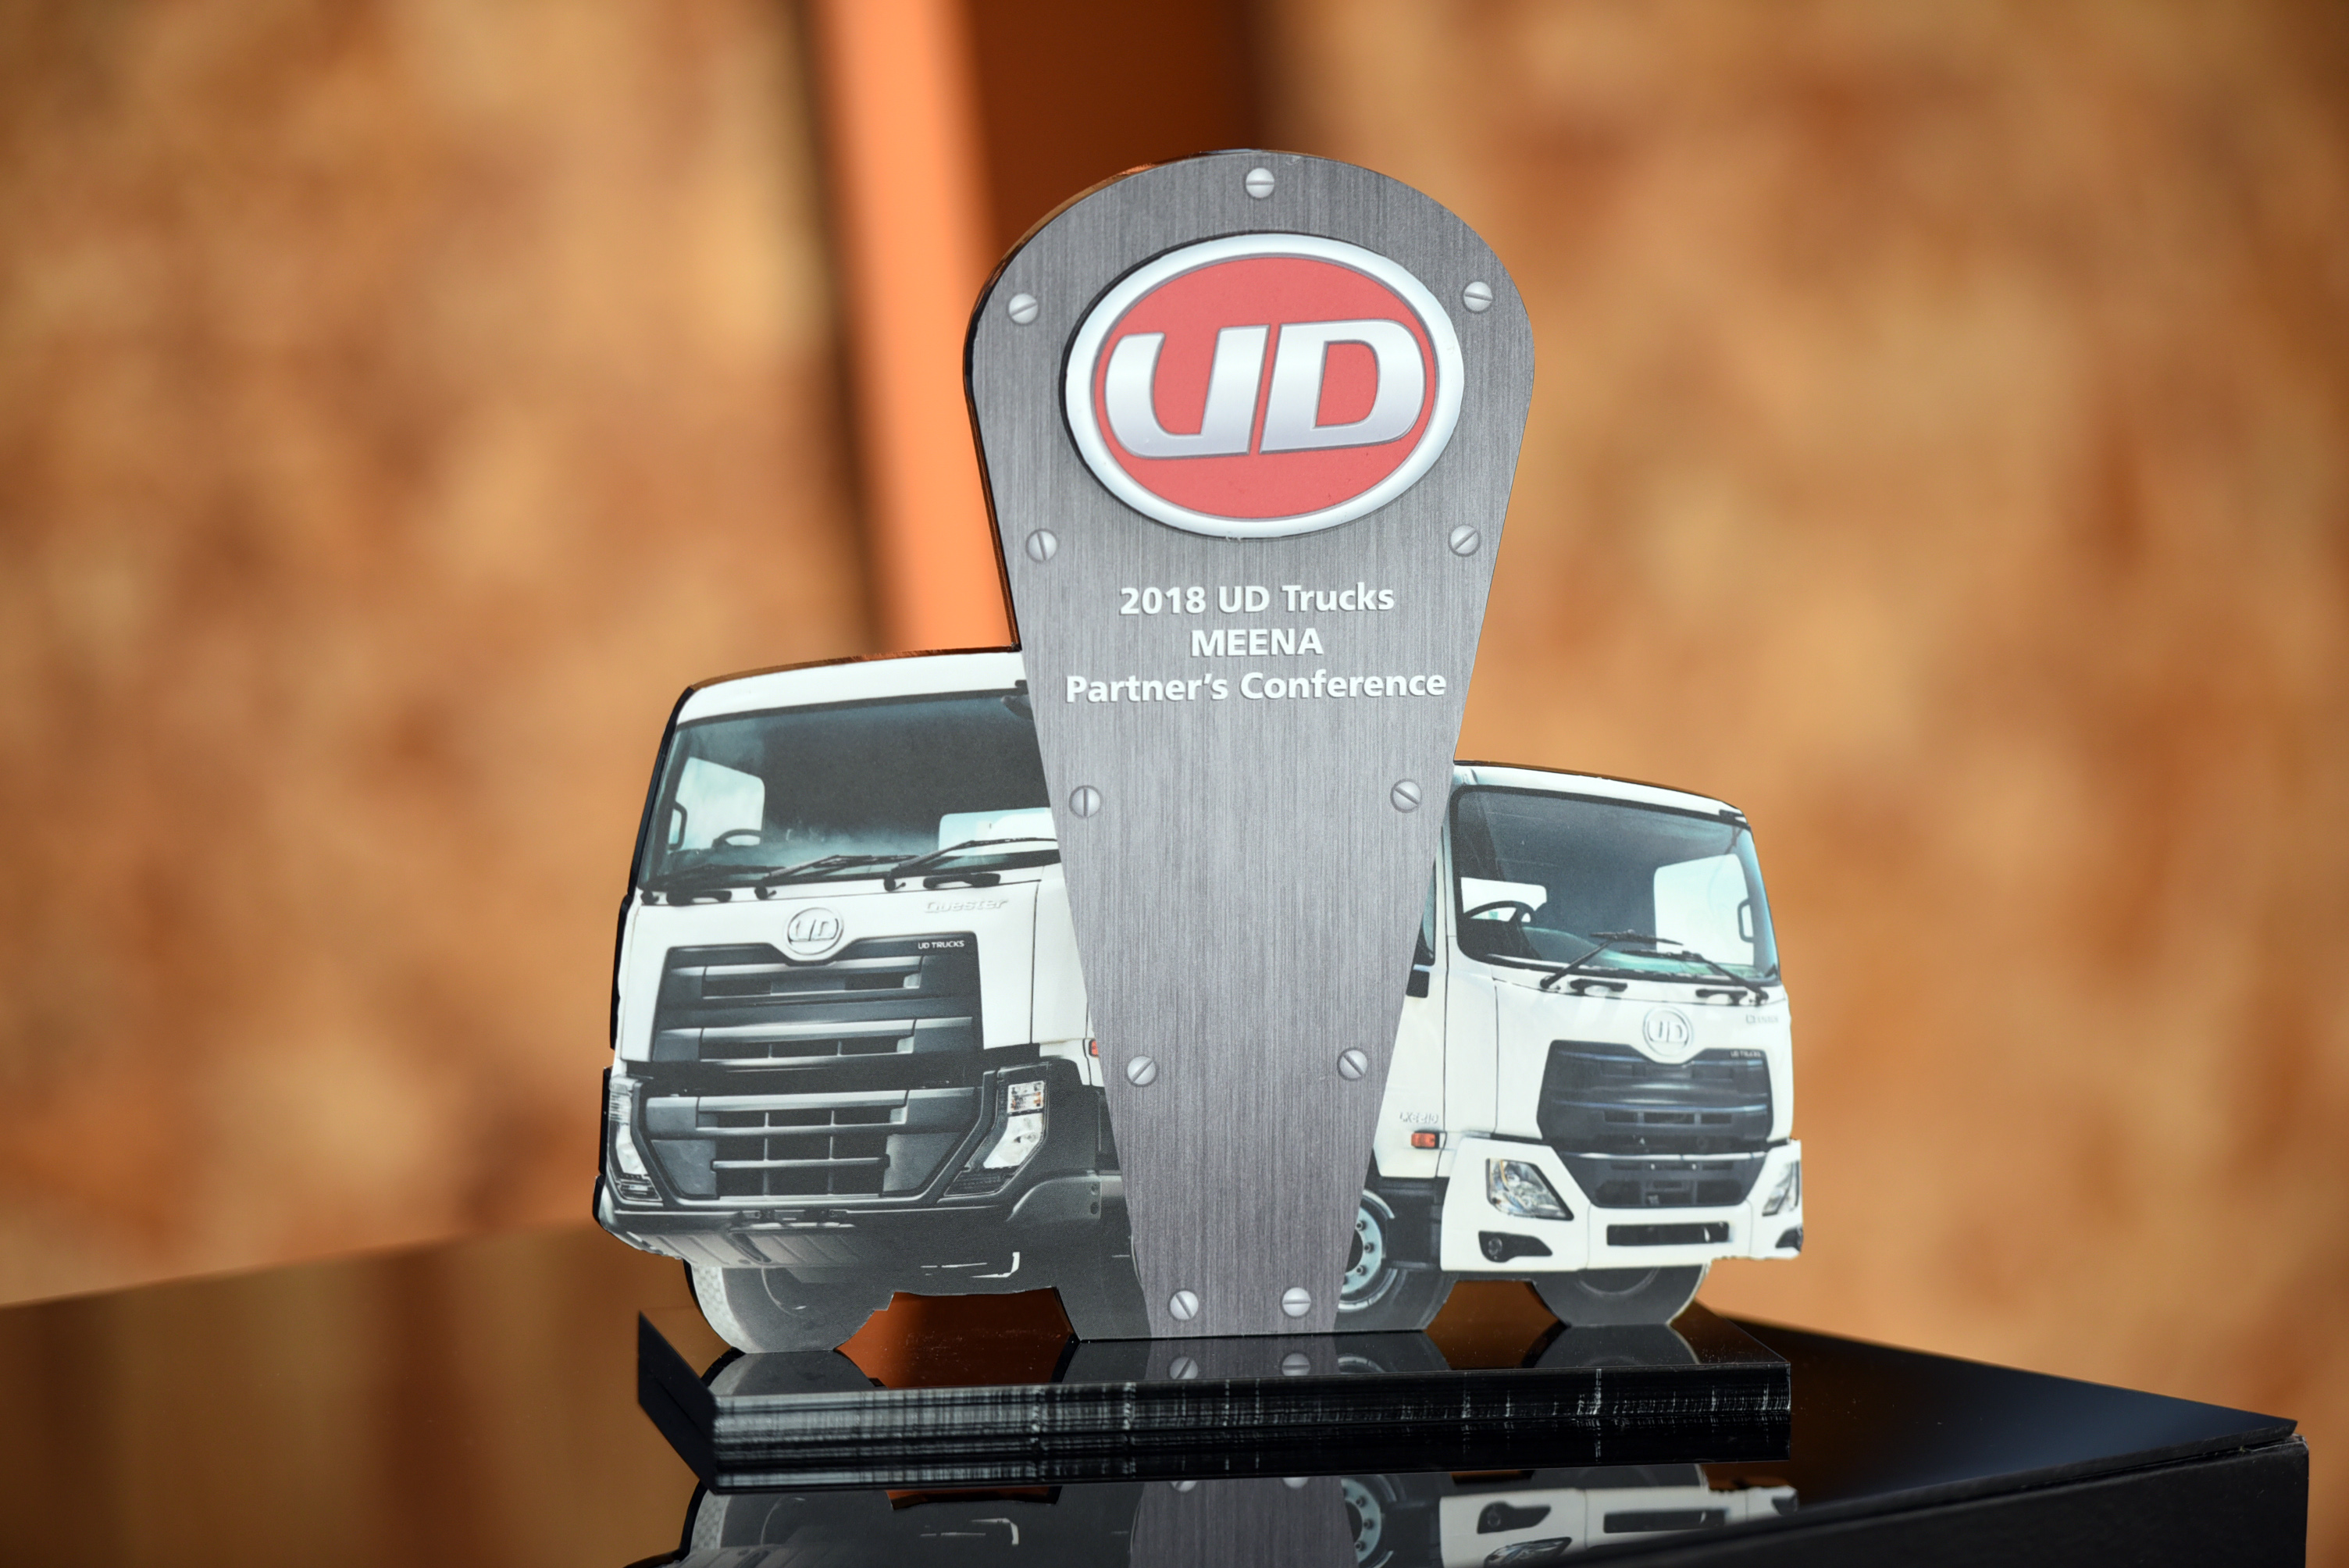 Al Masaood Commercial Vehicles & Equipment Division awarded 'Best Partner's Success Story' for 2017